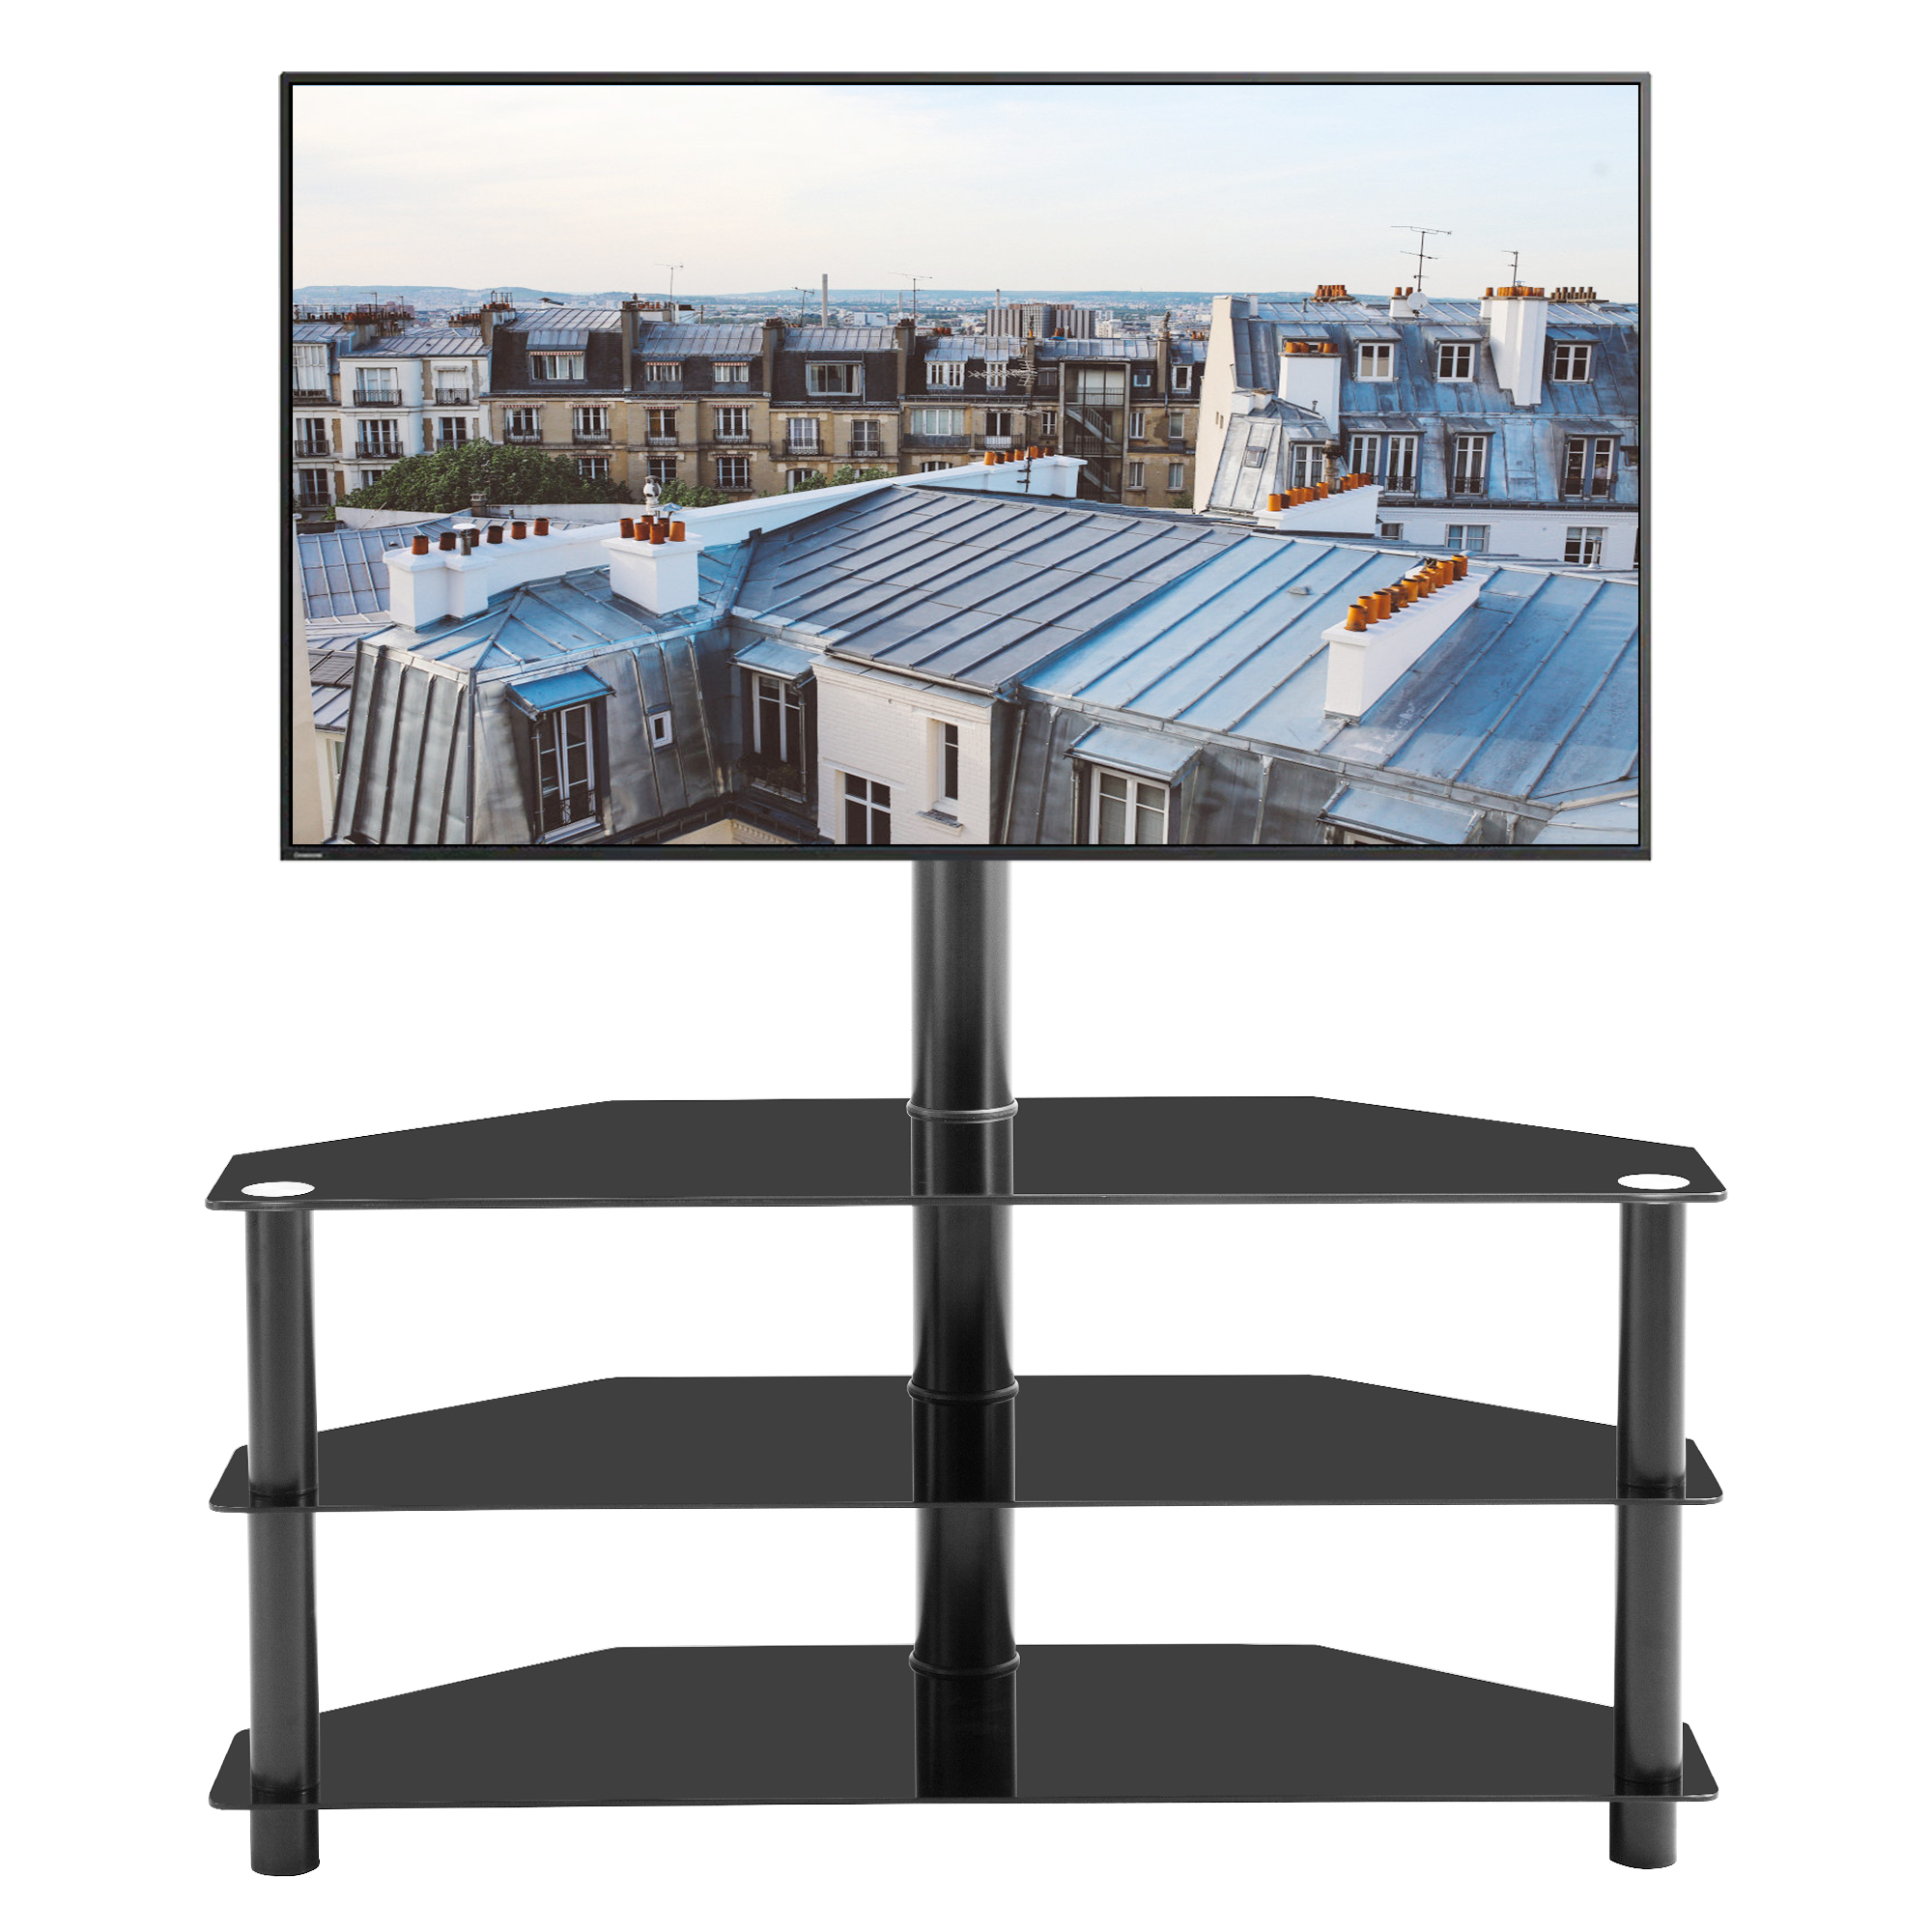 Corner Tv Stand 3 Tier Glass Tv Stand For 32 65 Inch Lcd Led Tv Entertainment Center With Storage Shelves Swivel Mount Media Console Table Living Room Office Home Tv Cabinet W8638